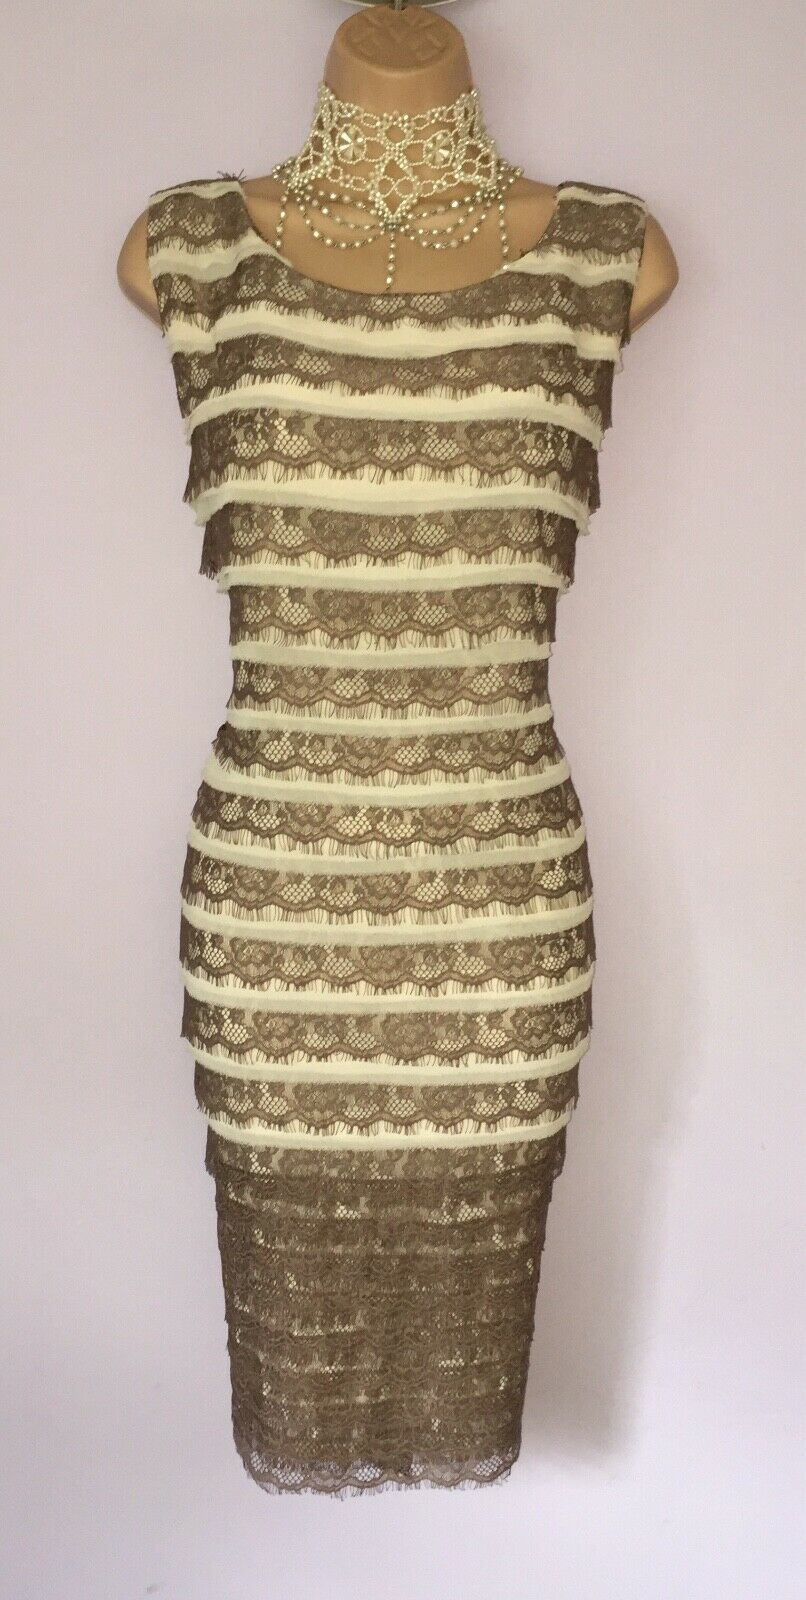 ELEGANT PHASE EIGHT DRESS L about UK 18 TIERED LACE OCCASION DRESS WEDDING RACES